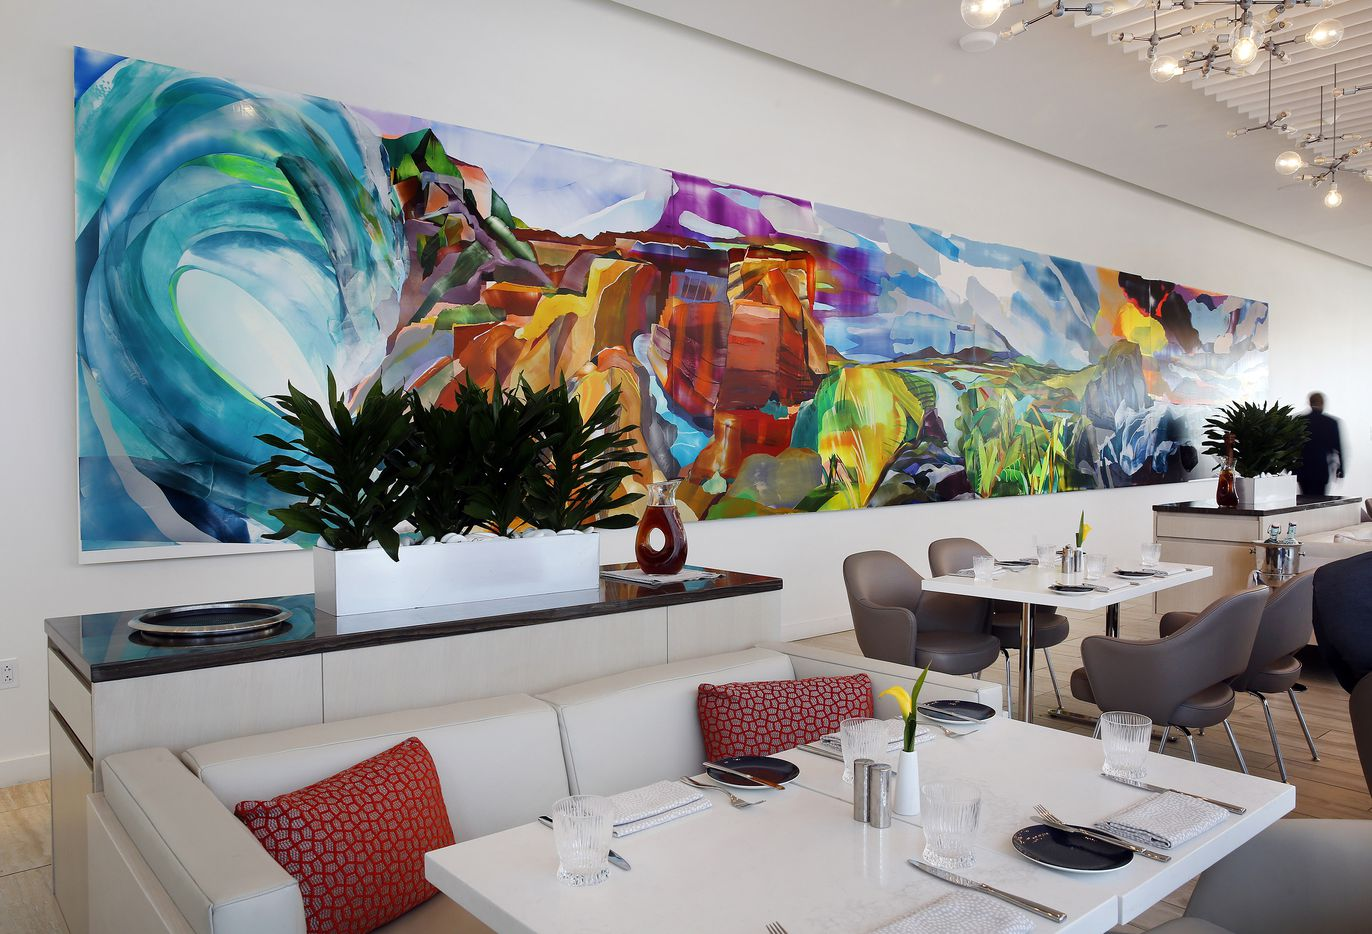 Spangled Ramparts mural by artist Kristin Baker is on display in Ellie's restaurant & lounge in Hall Arts Hotel, Friday, February 21, 2020.  The new hotel is in the Arts District of downtown Dallas.